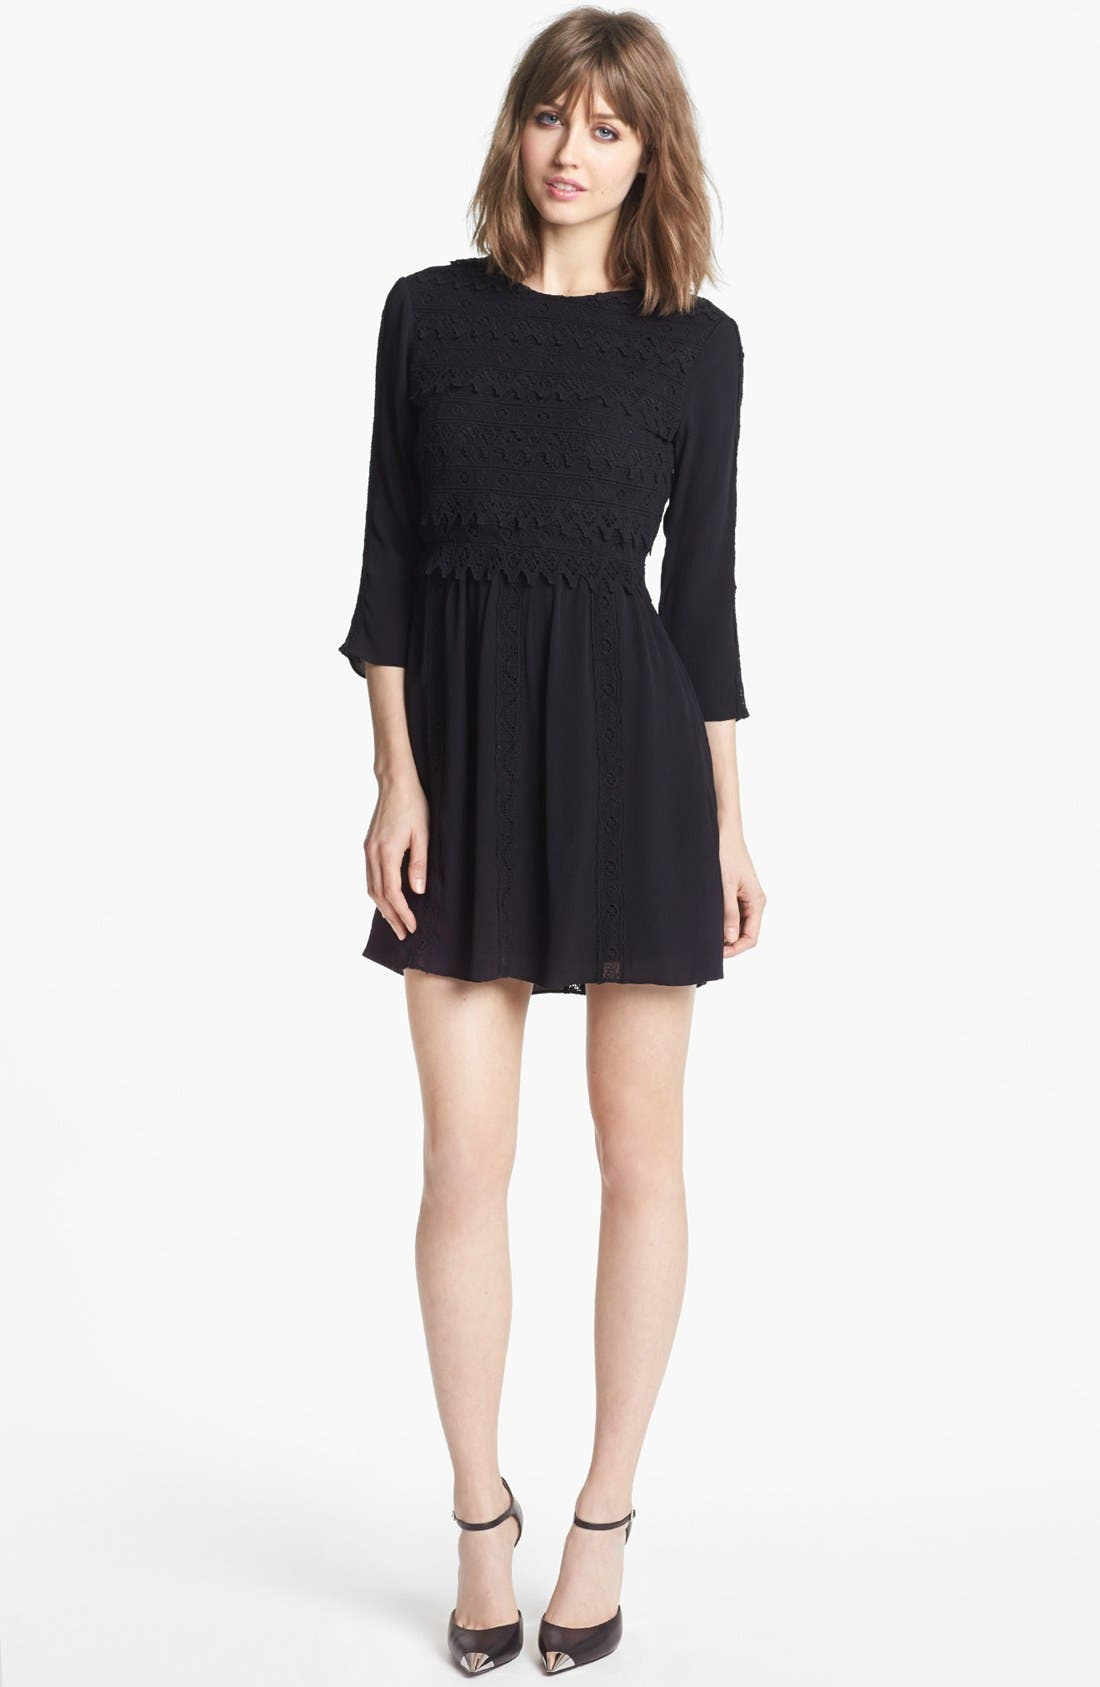 Alternate Image 1 Selected - Dolce Vita Lace Fit & Flare Dress